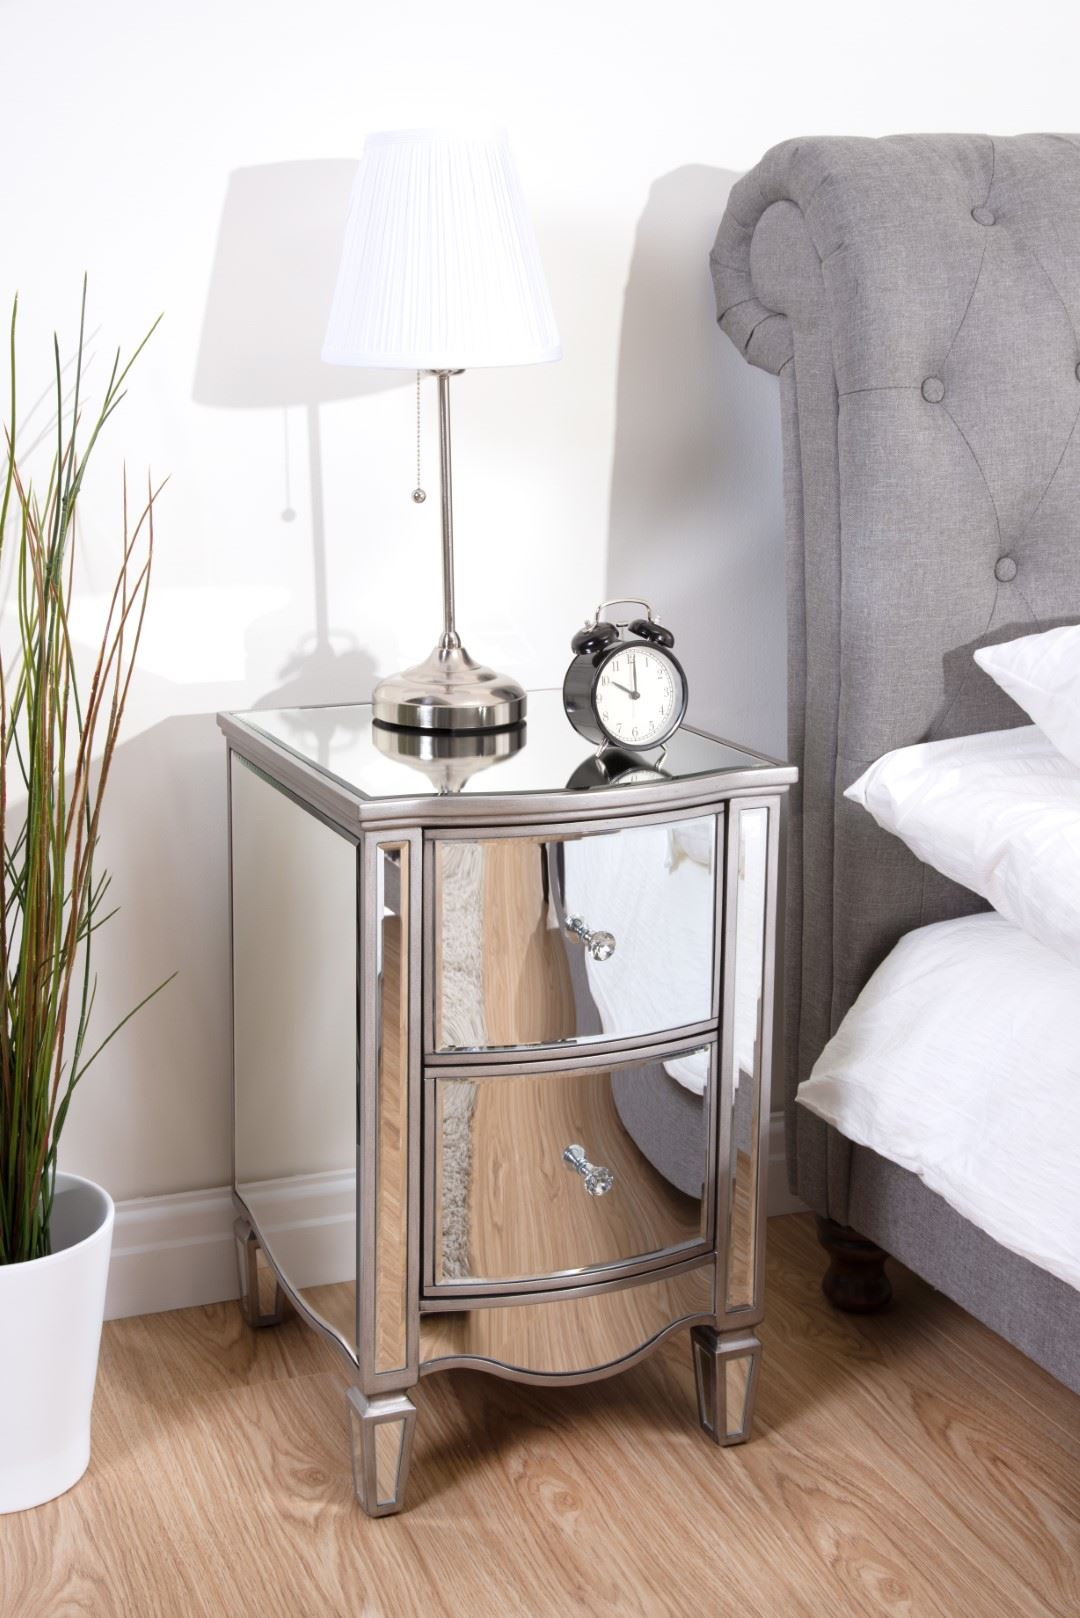 Birlea Elysee Mirrored 2 Drawer Mirror Furniture Bedside Chest Crystal Handle